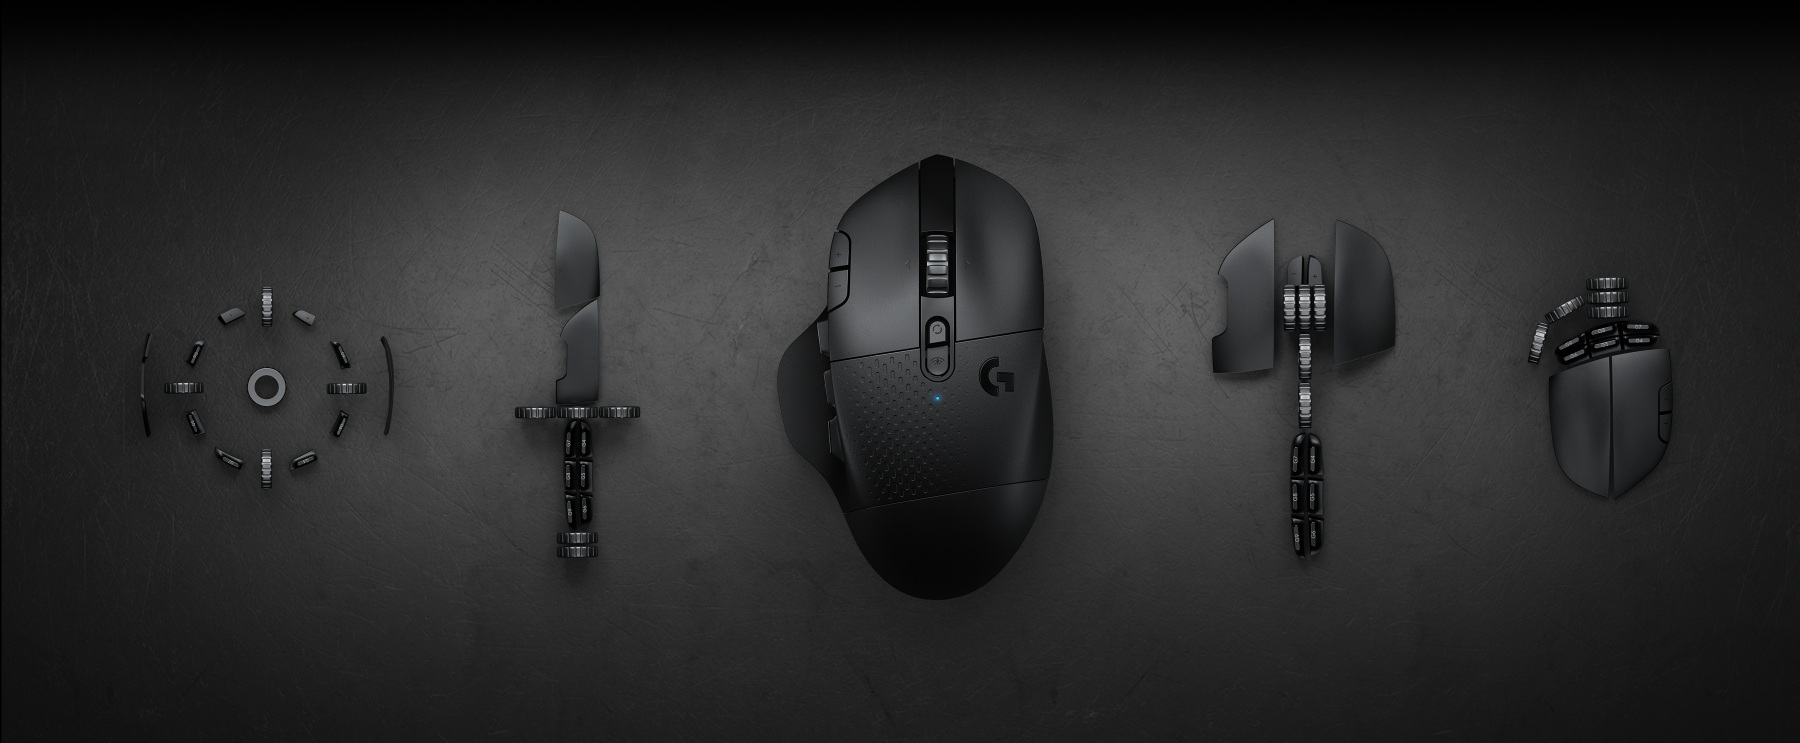 G604 Lightspeed | MAKE YOUR PLAY